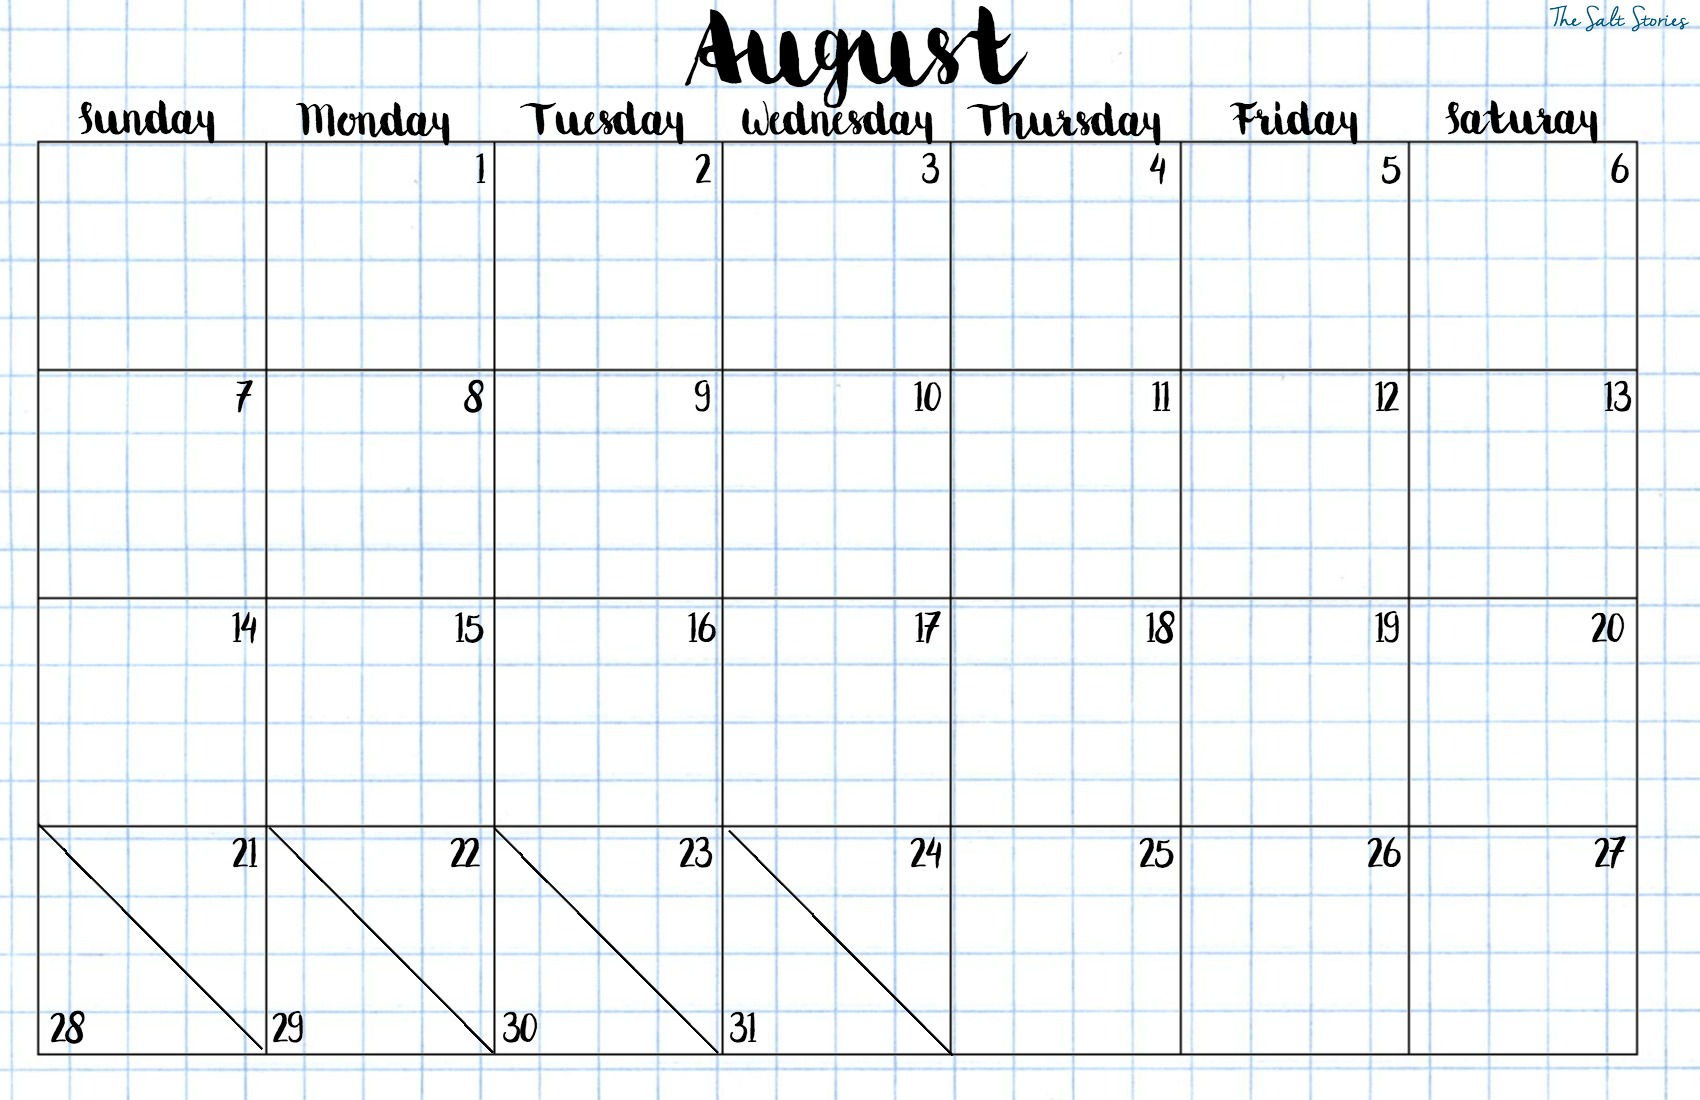 august-calendar-no-saints